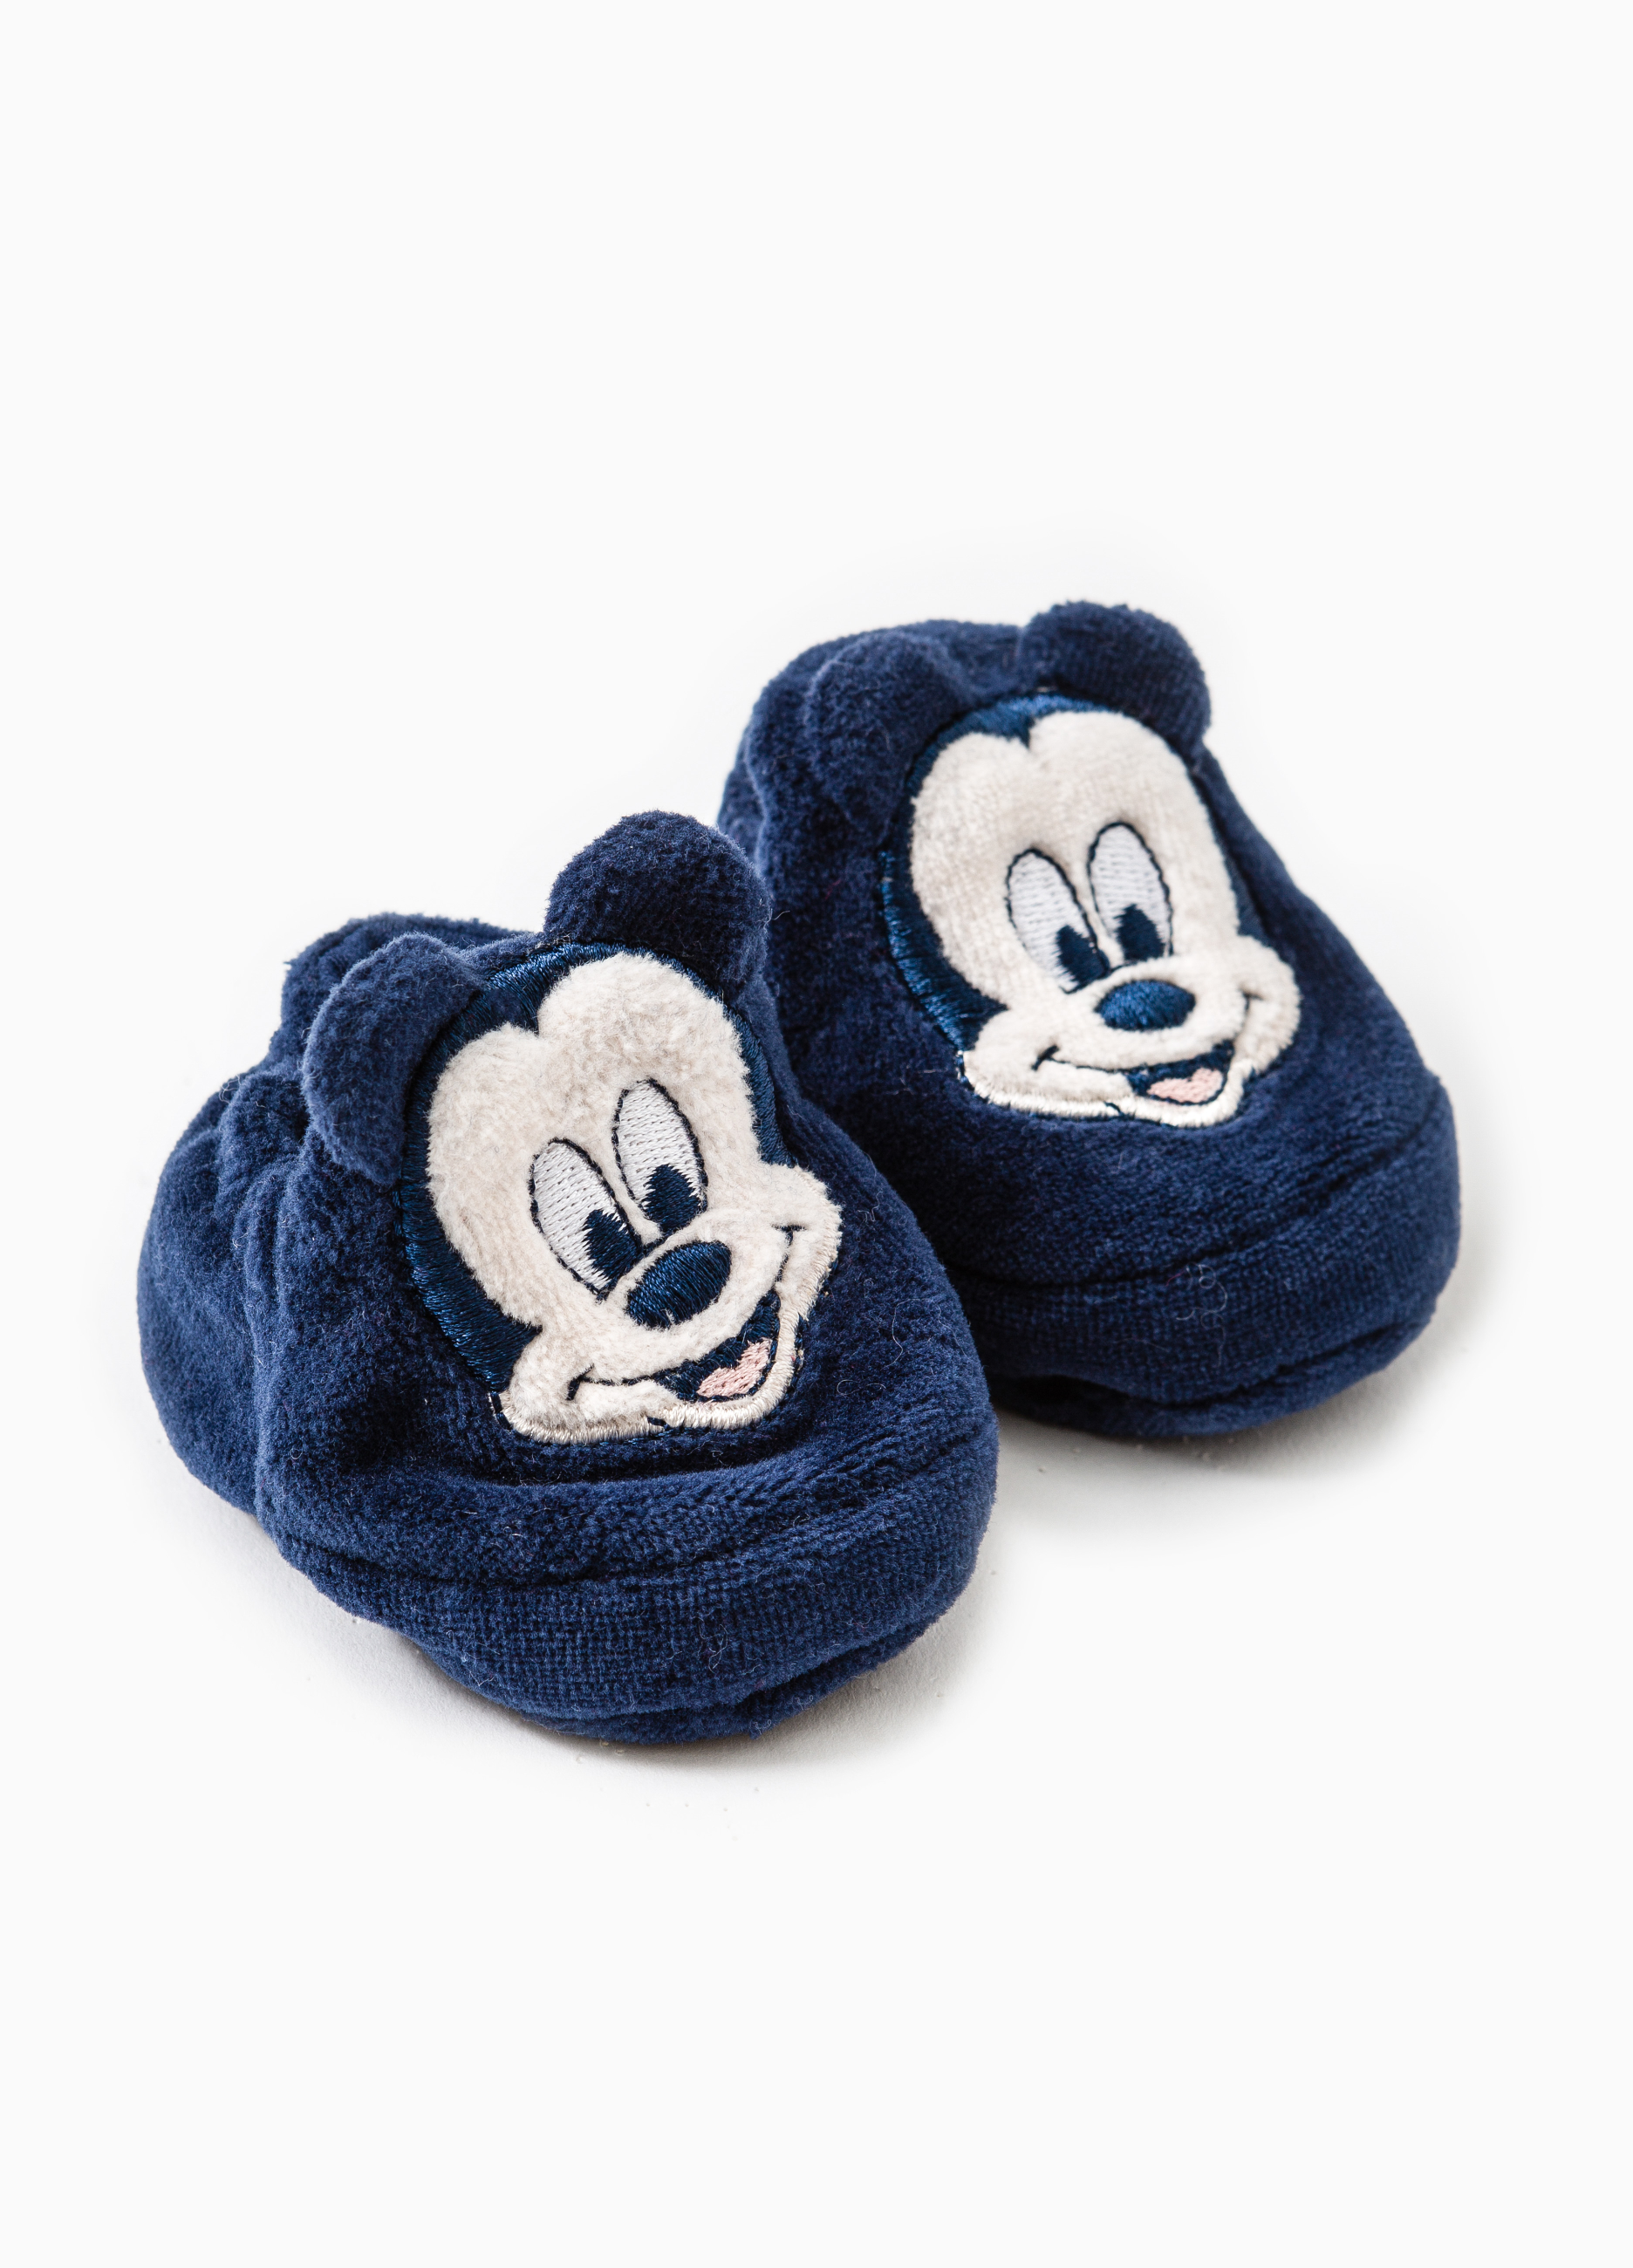 Baby Mickey Mouse hat and shoes set